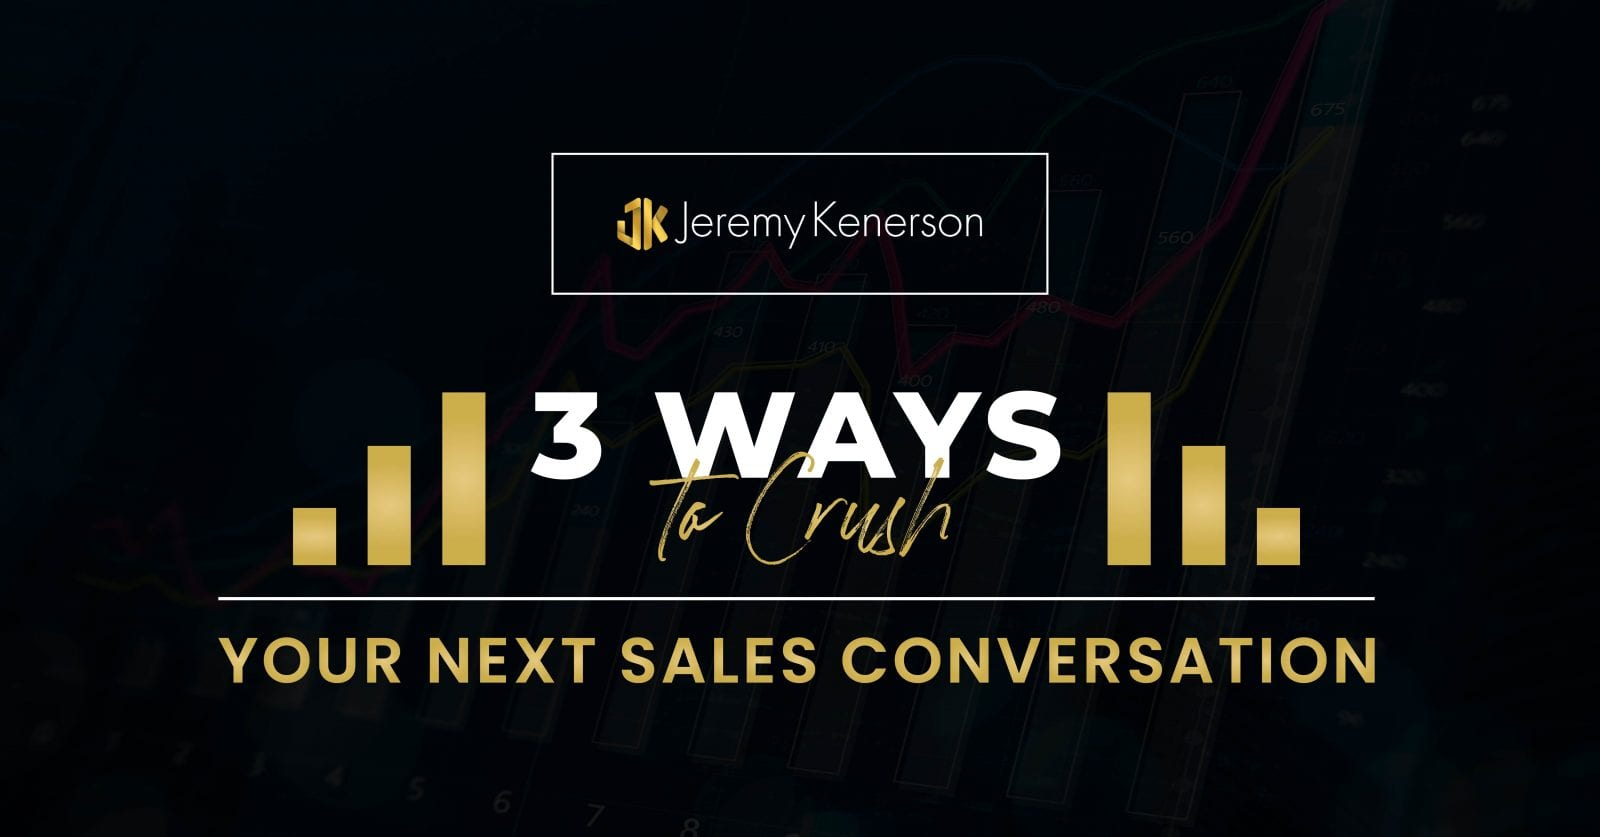 Black background with gold and white lettering 3 ways to crush your next sales conversation with Jeremy Kenerson.